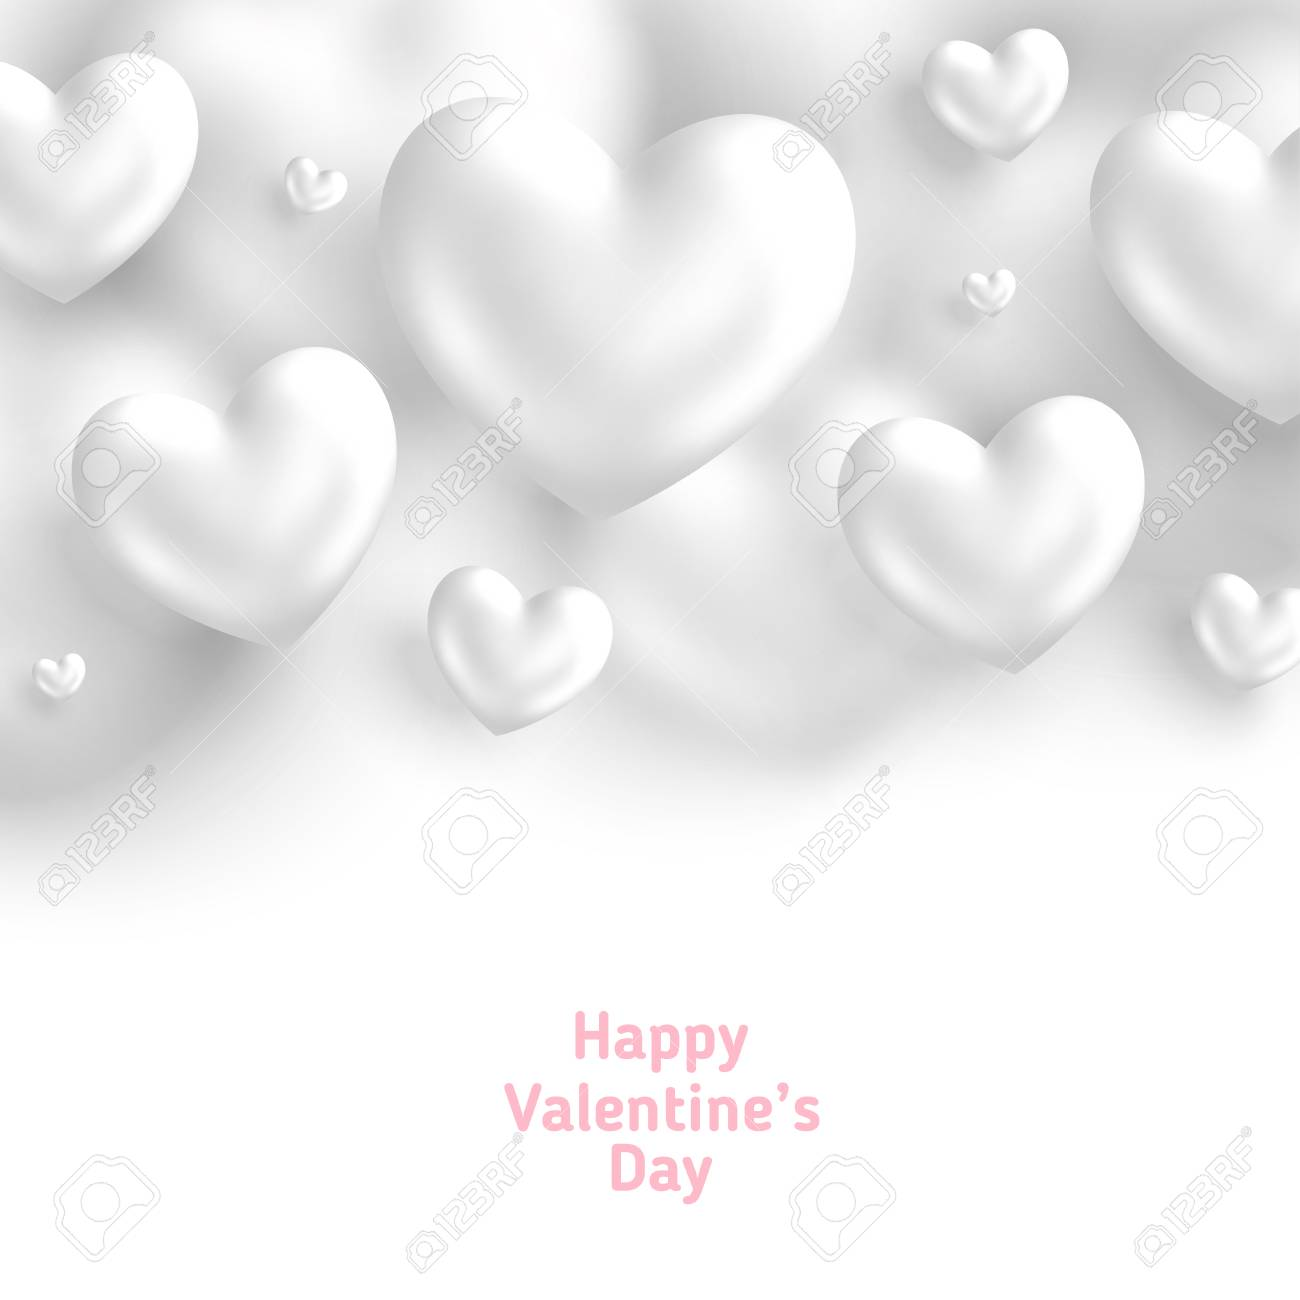 White Valentine S Day Background 3d Hearts On Bright Backdrop Royalty Free Cliparts Vectors And Stock Illustration Image 113563207